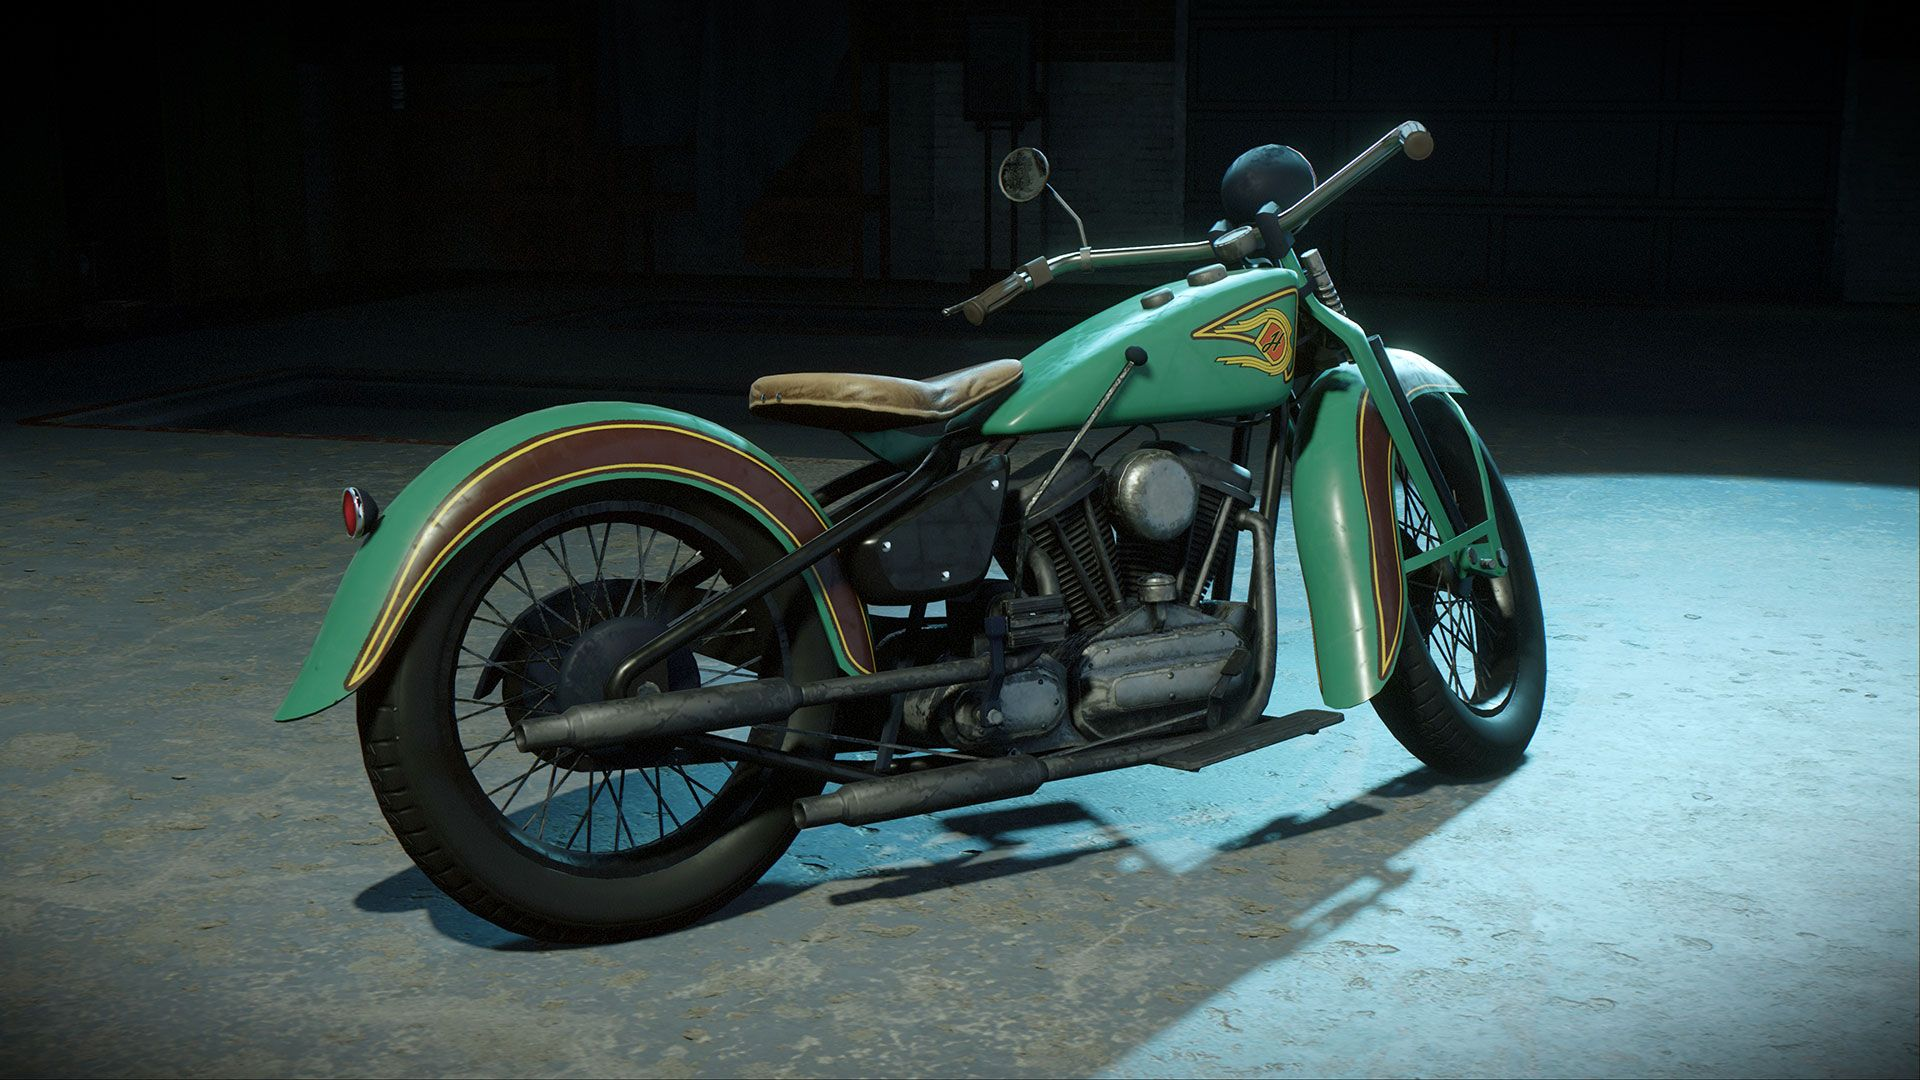 A new motorcycle from Mafia: Definitive Edition.